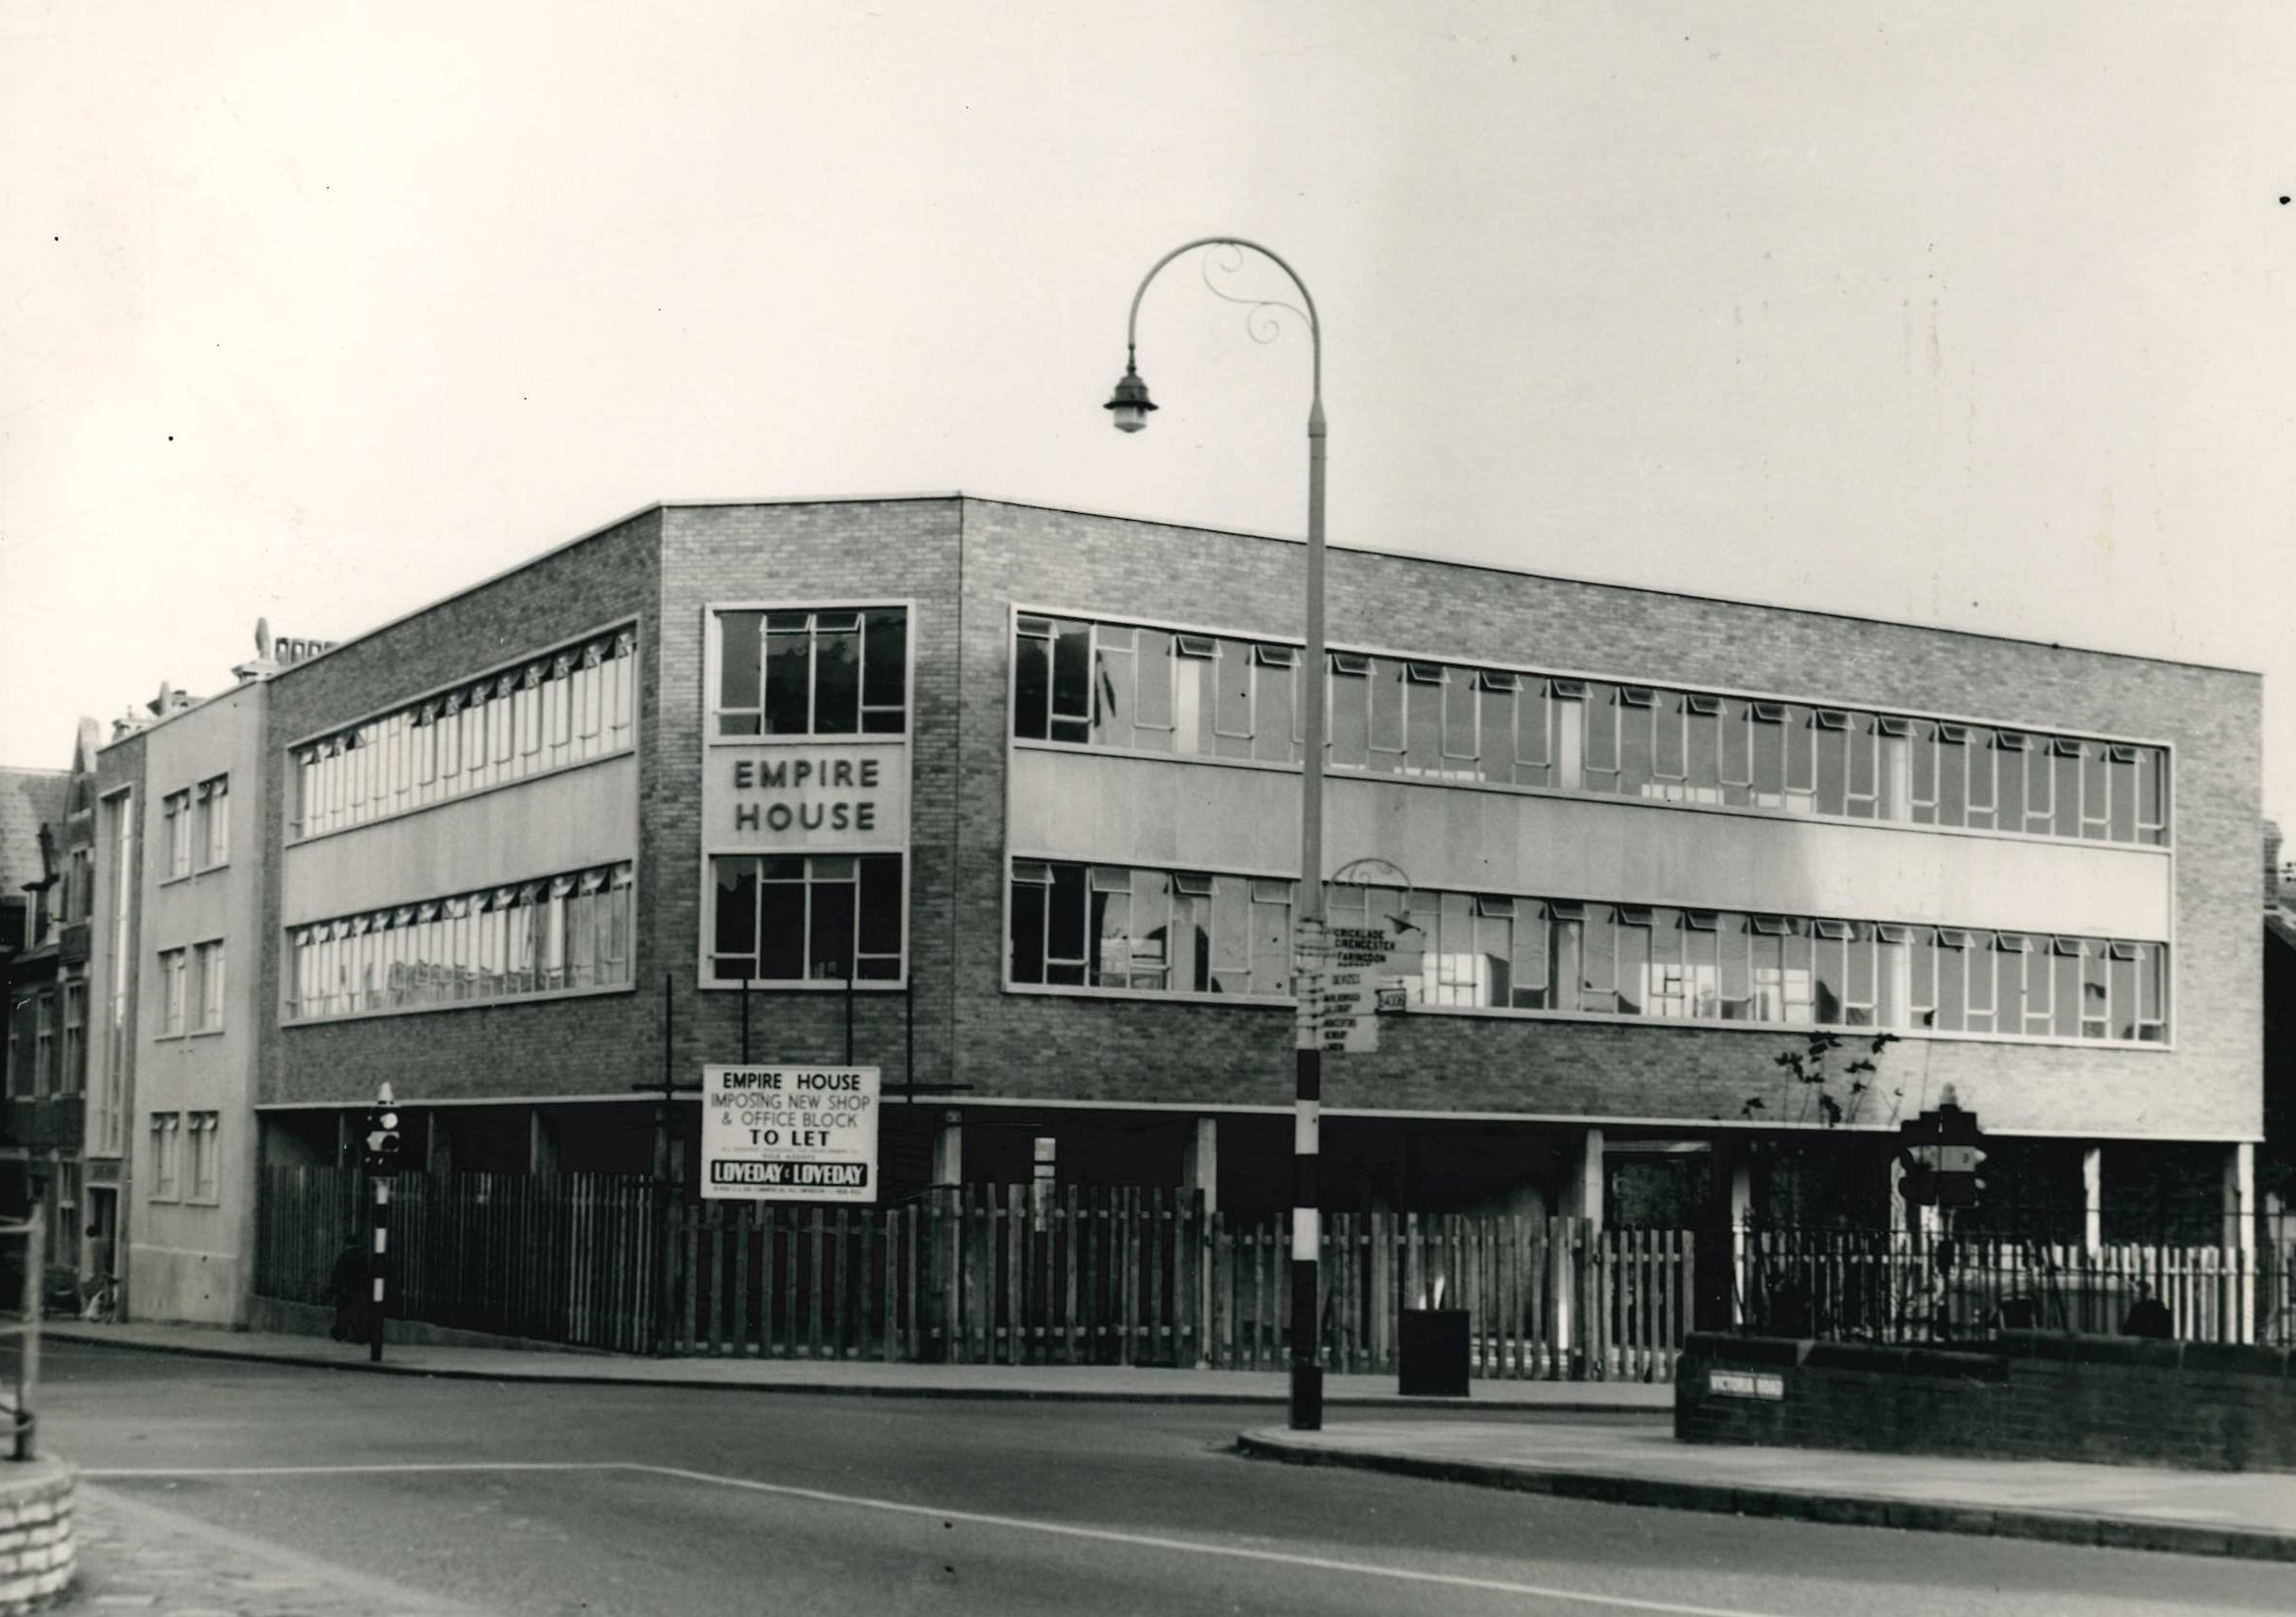 Empire House is now nearly as old as the Theatre which previously stood on the site - and whose name it bears